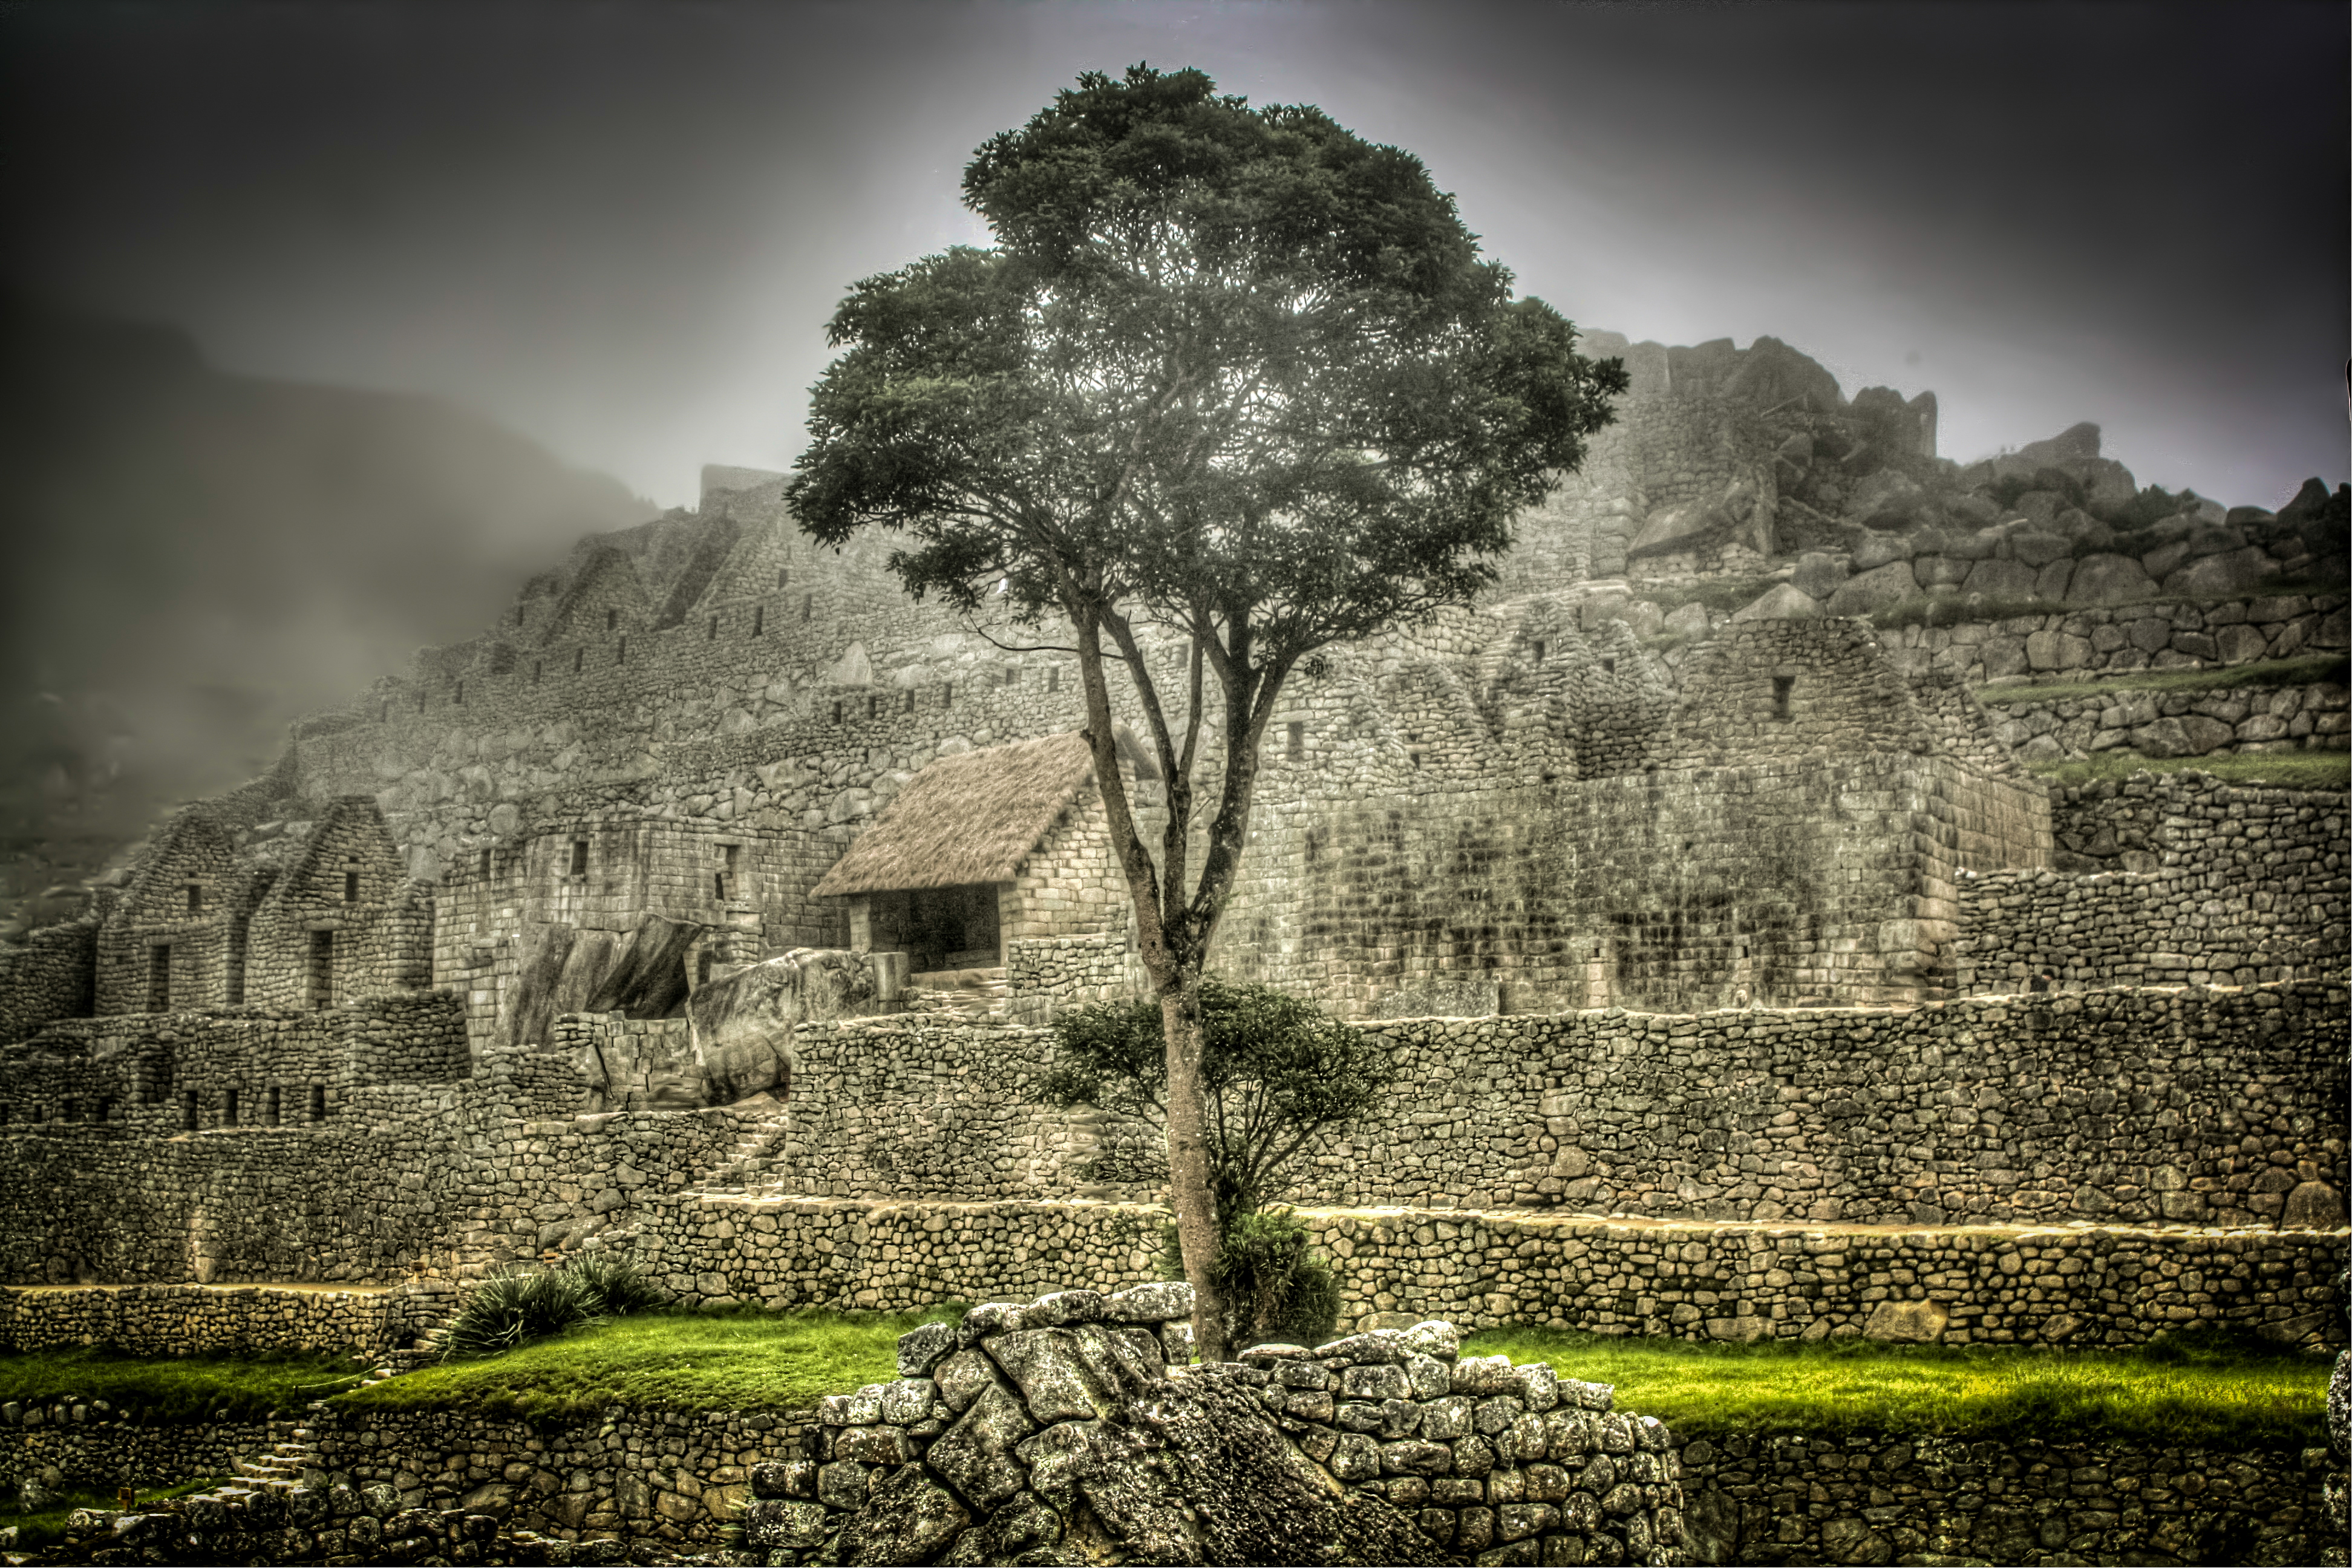 The Tree at Machu Picchu